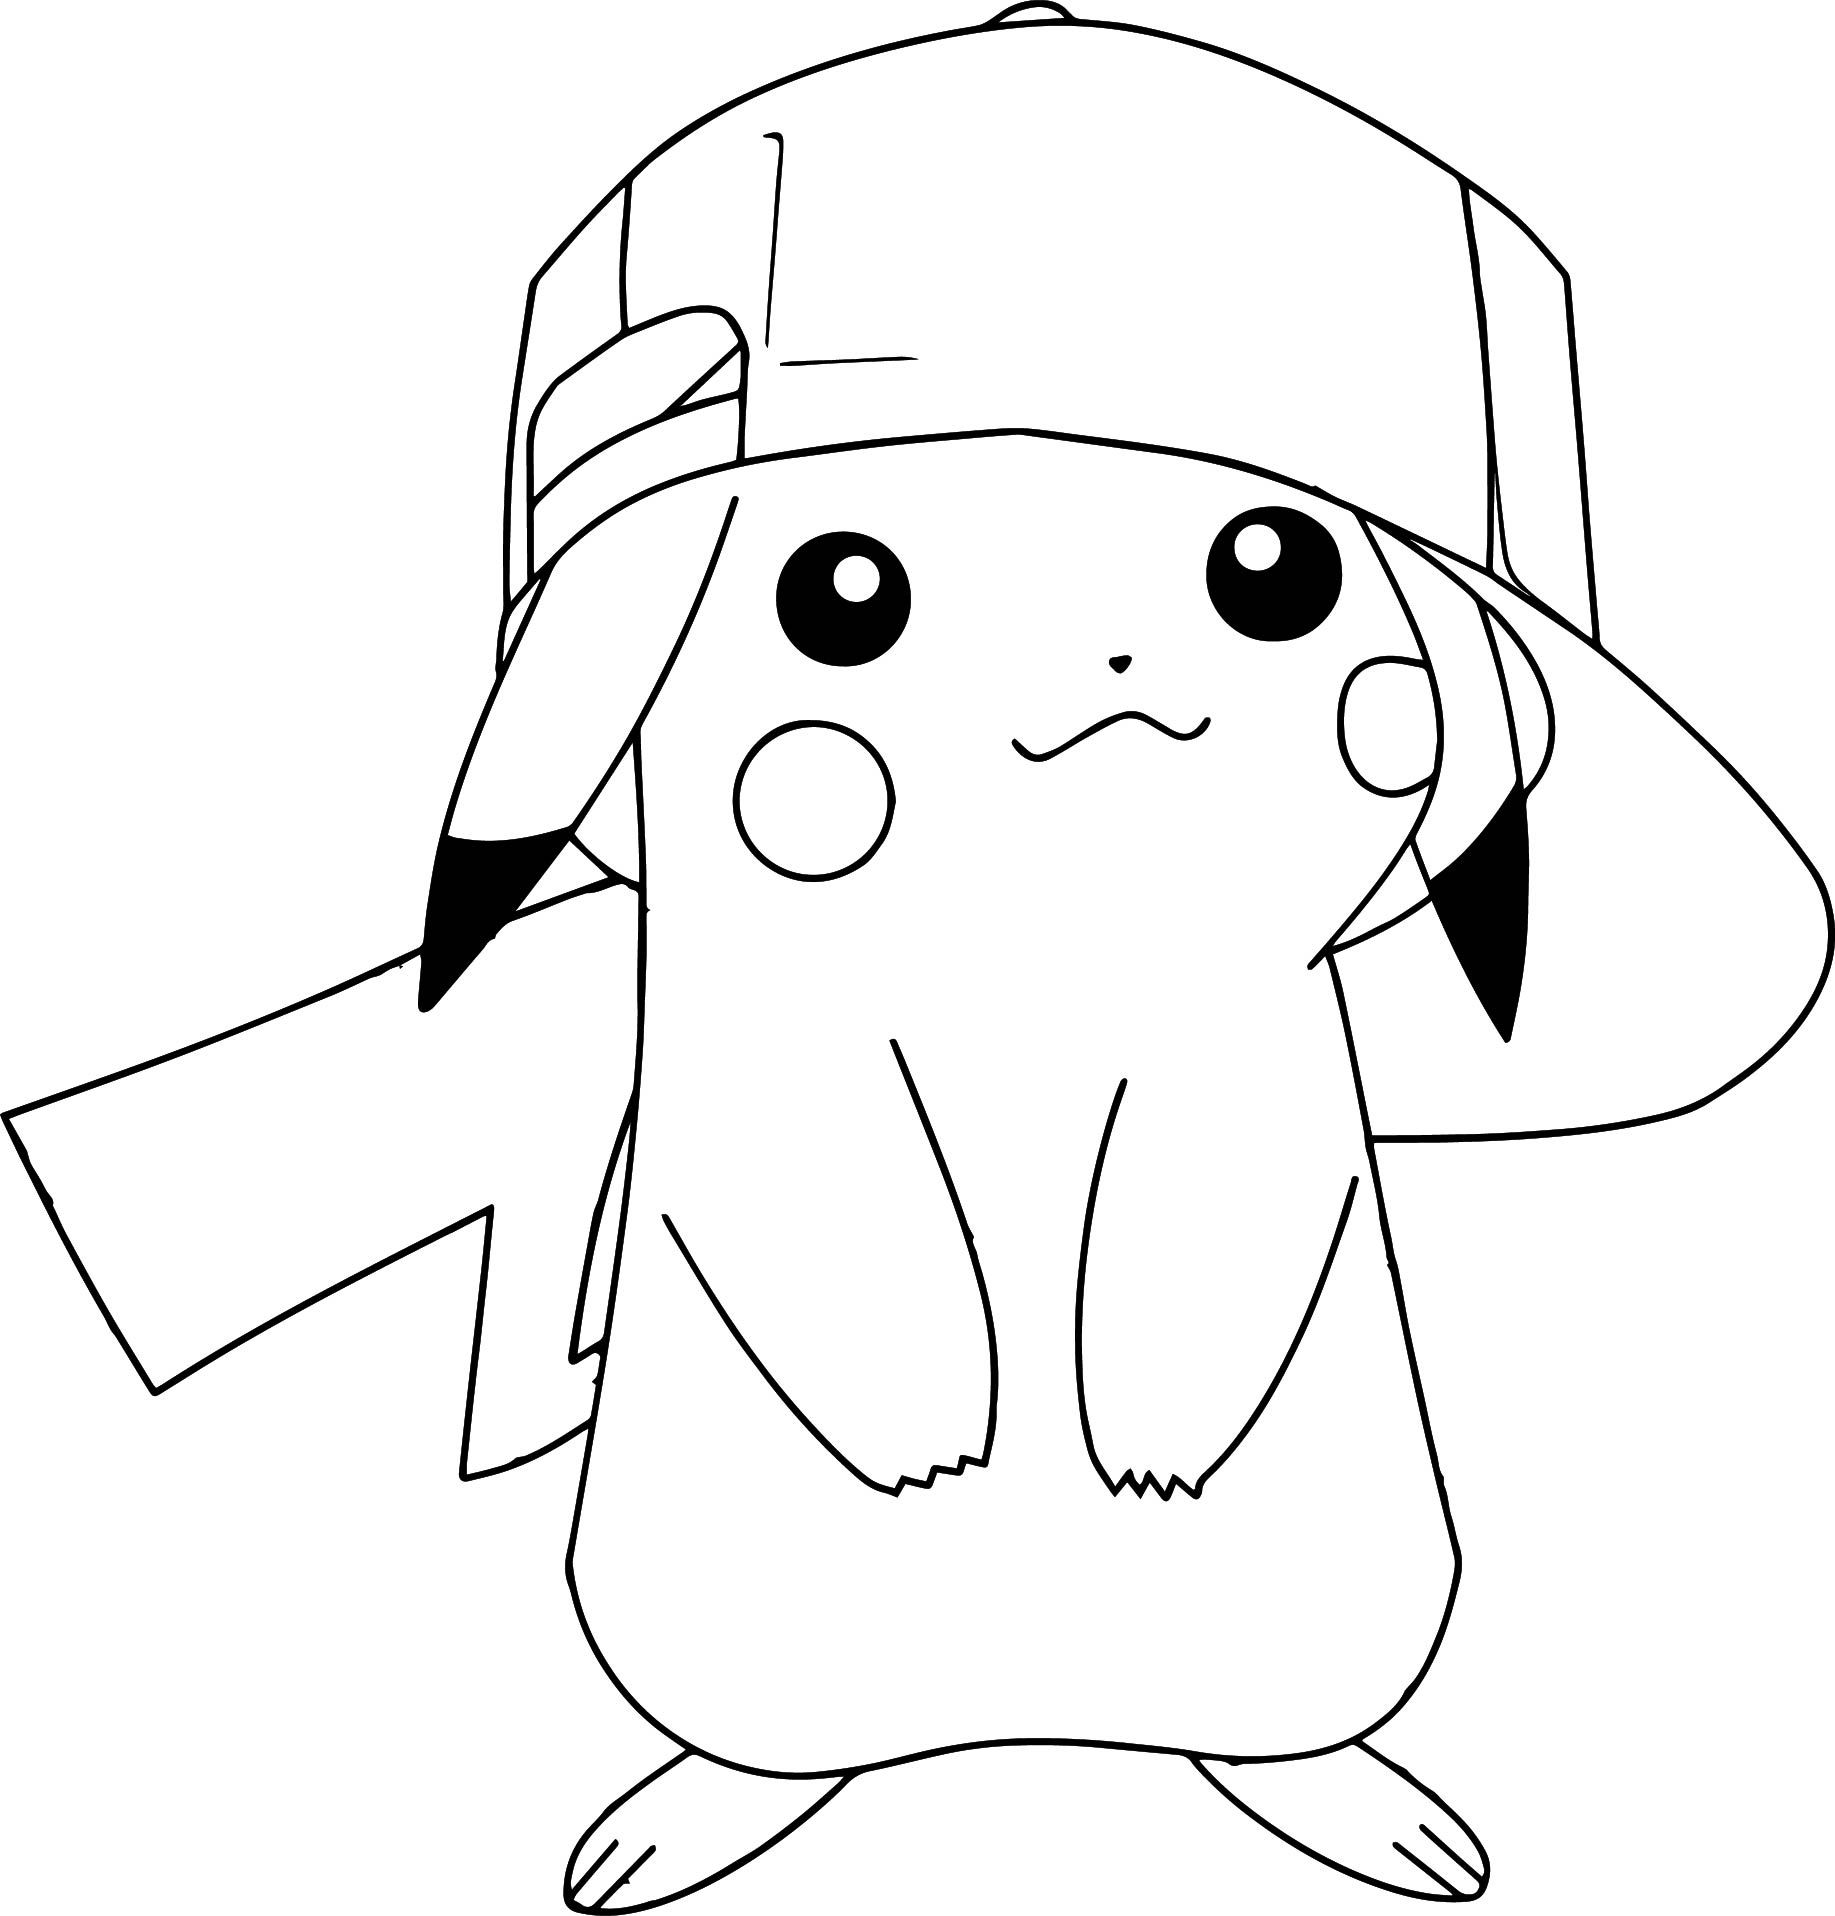 Pokemon Coloring Pages Pikachu Wearing Hat Pikachu Coloring Page